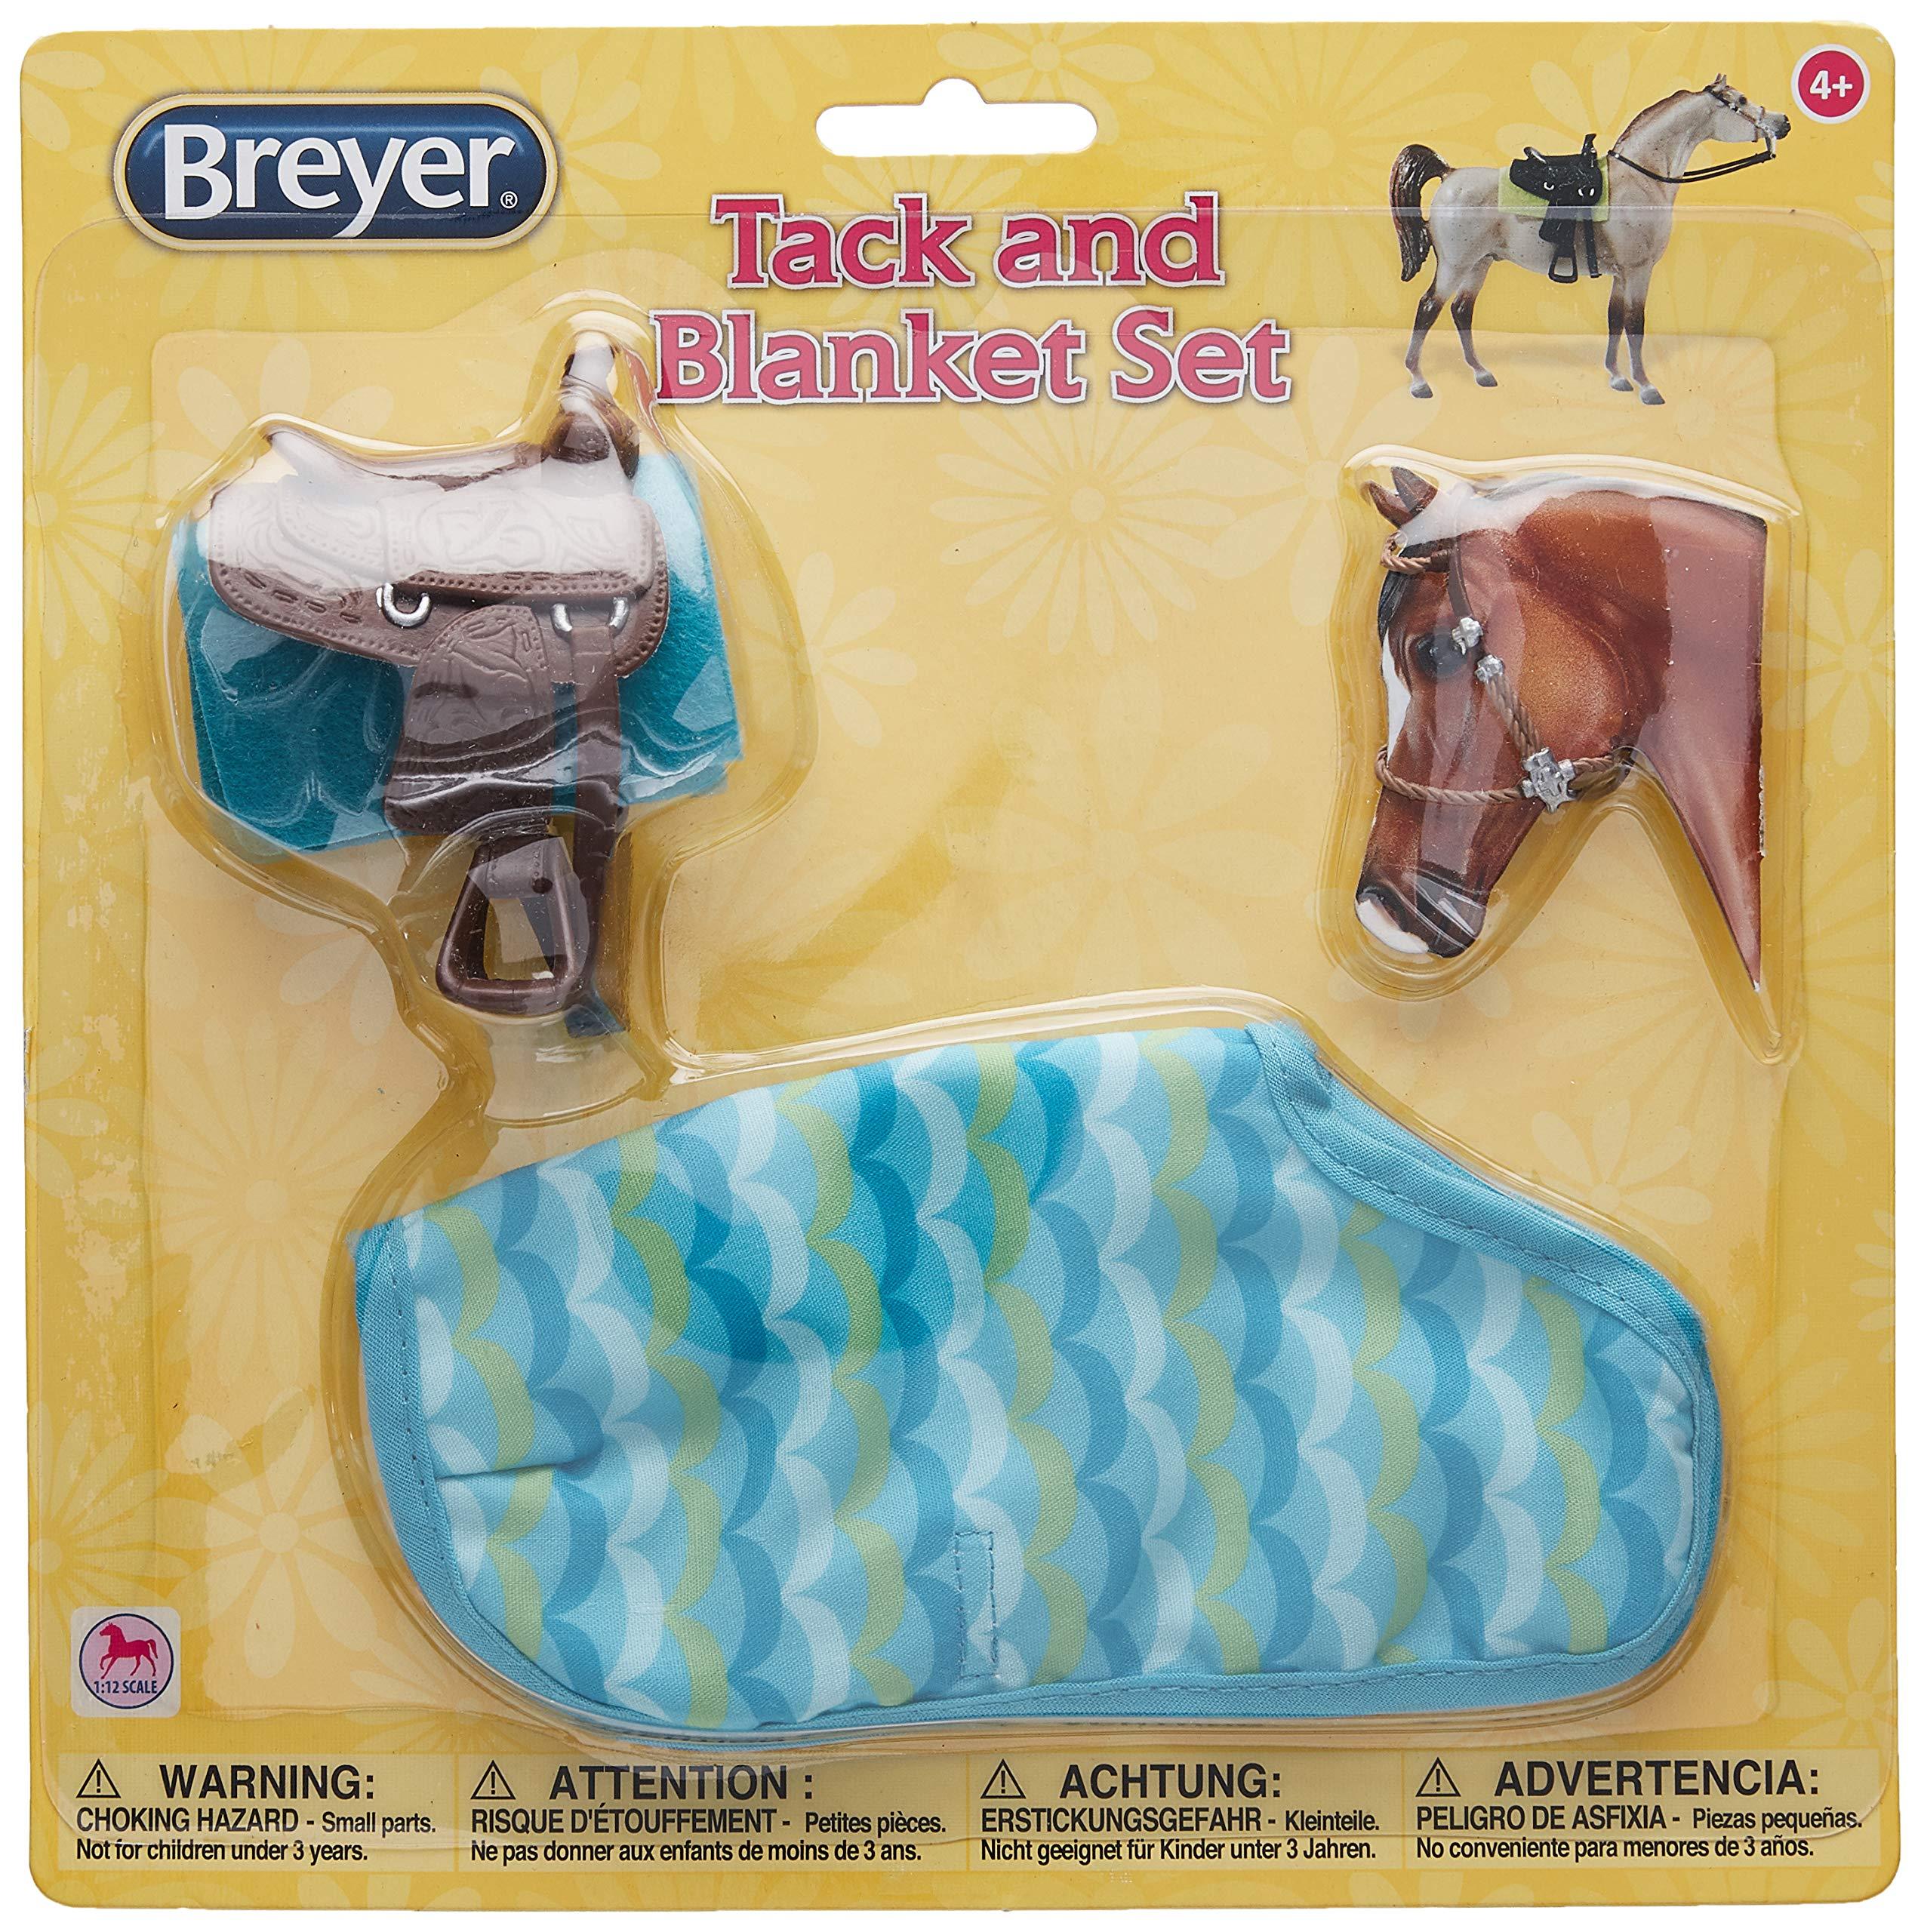 Breyer Classics Toy Saddle Set and Blanket Asst. by Breyer